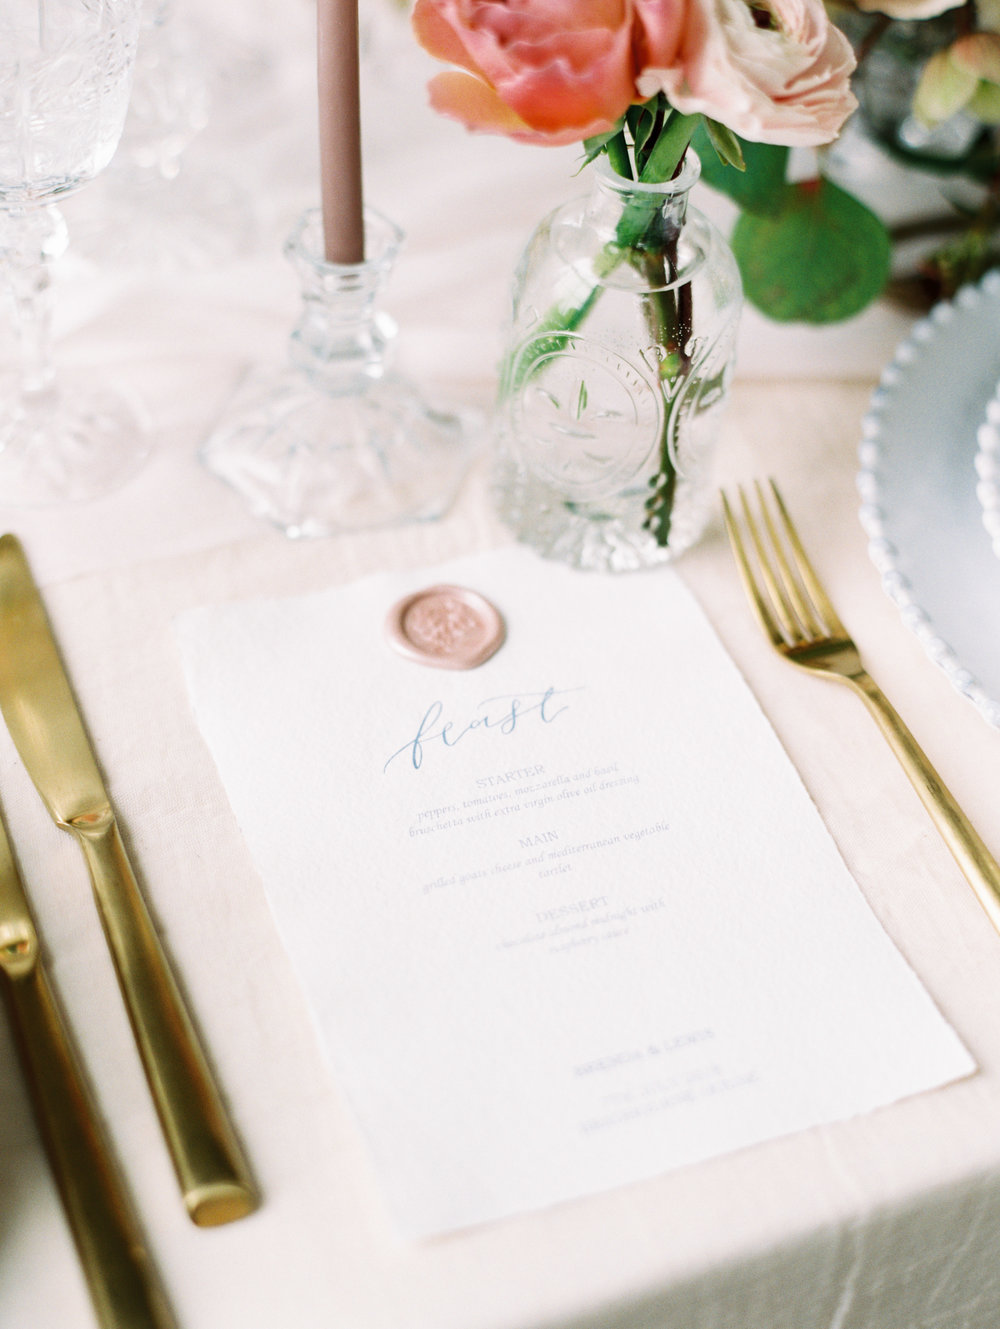 The Timeless Stylist-Elegant and Romantic Wedding Styling-Cut Glass Tableware and Fine Art Wedding Stationery